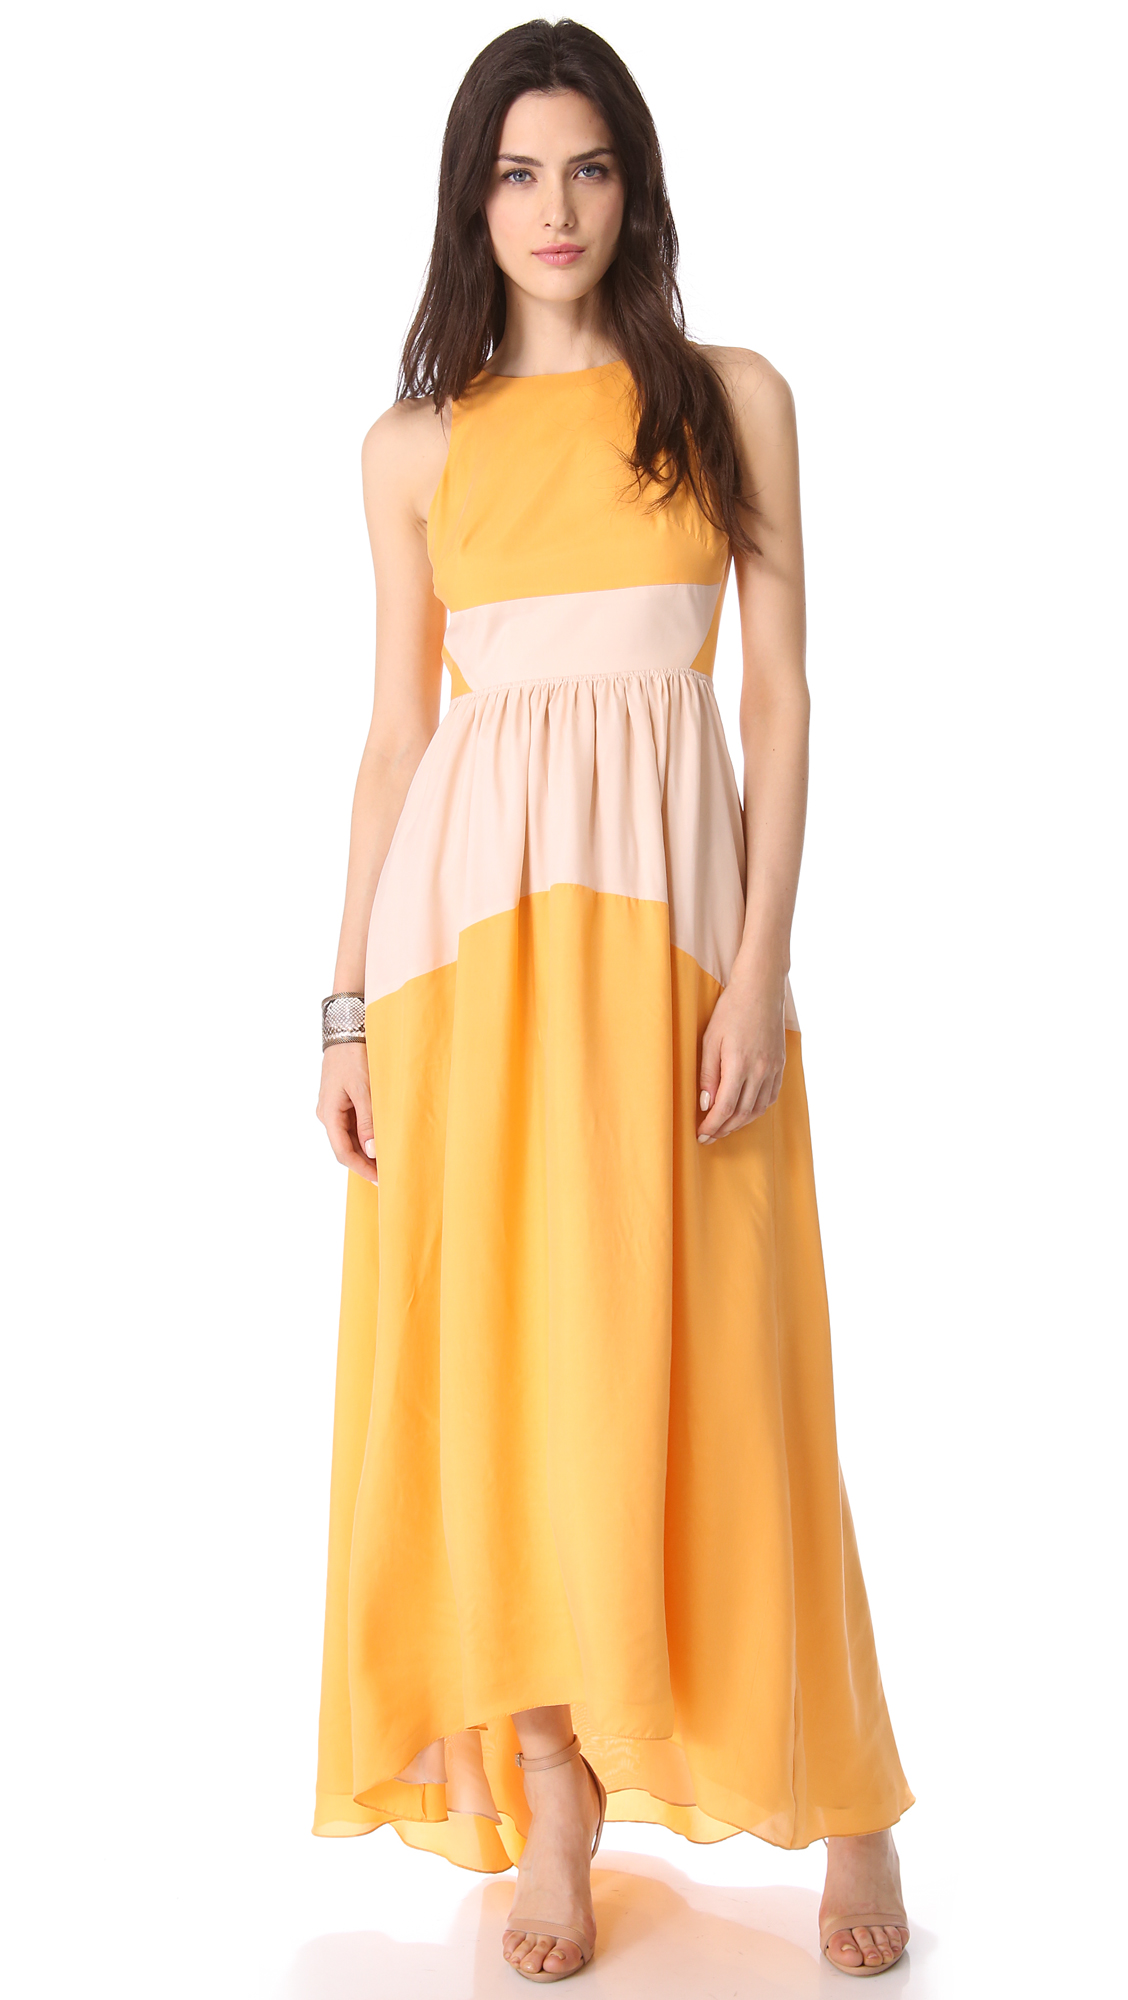 Tibi Colorblock Maxi Dress in Yellow - Lyst